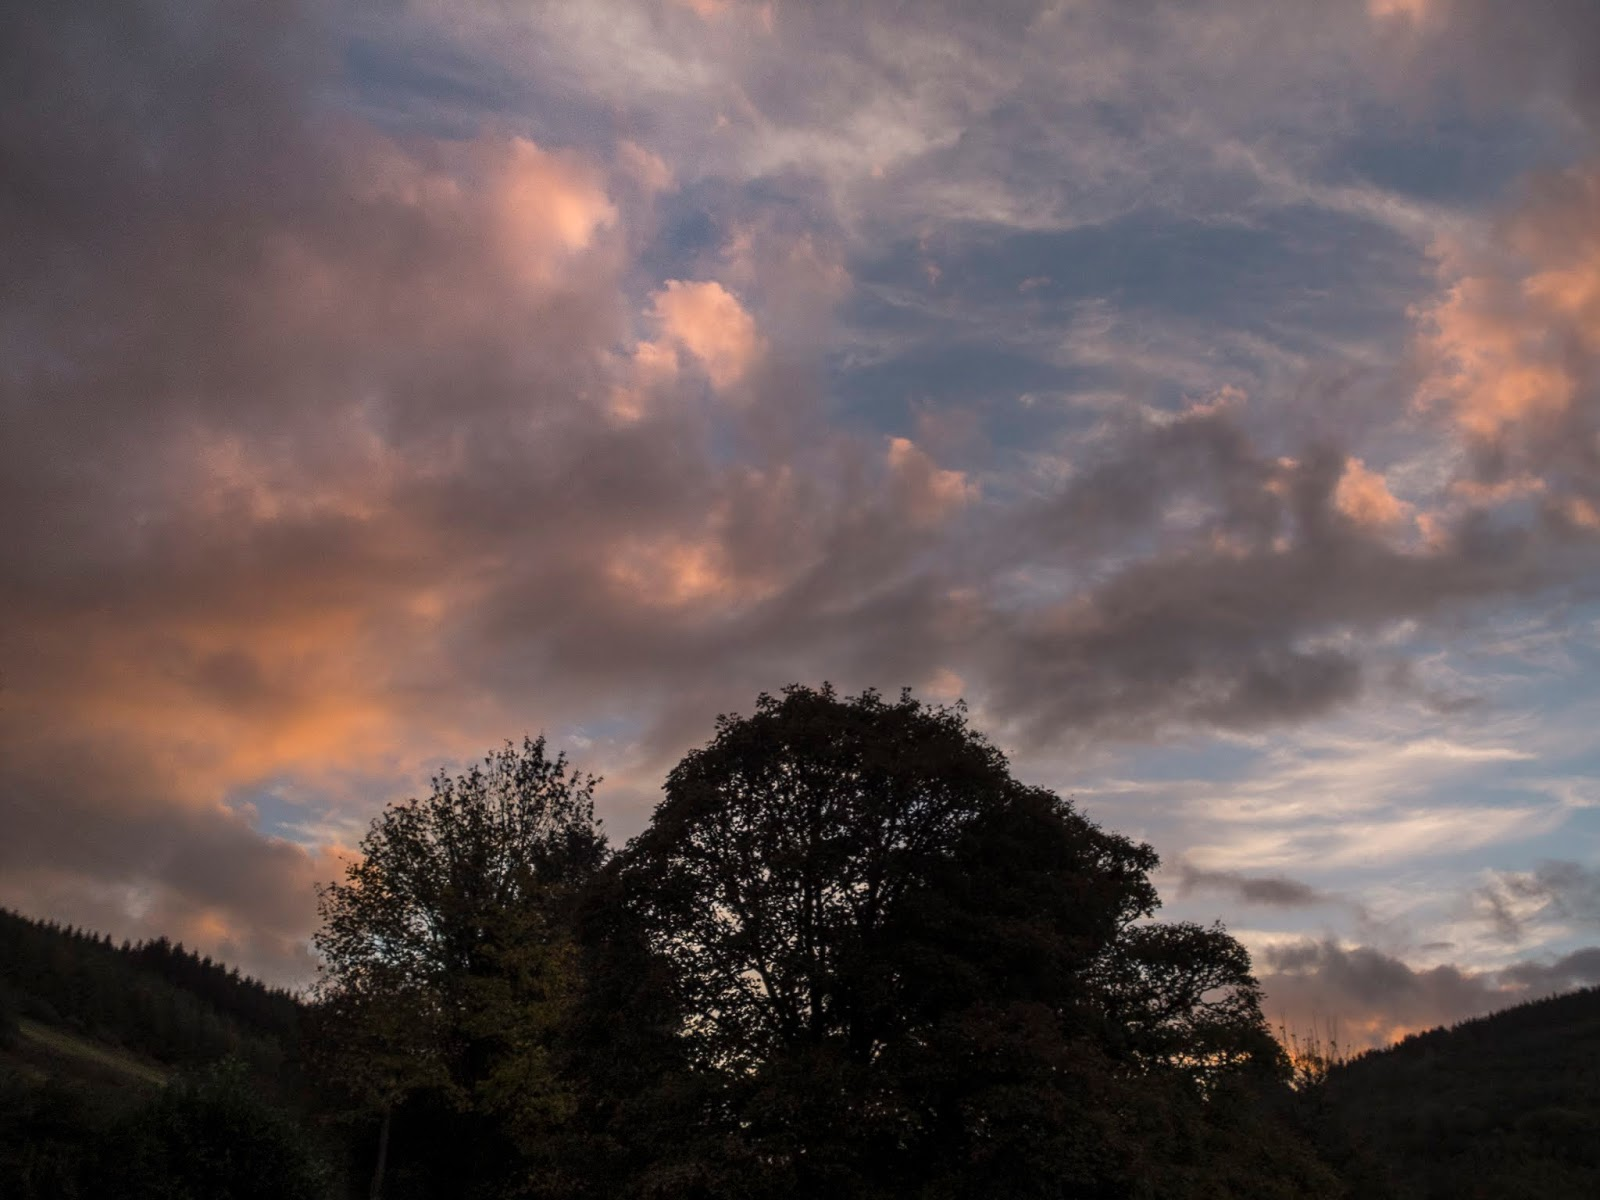 Sunset clouds over mature Maple trees in a valley in the Boggeragh Mountains, North Cork.